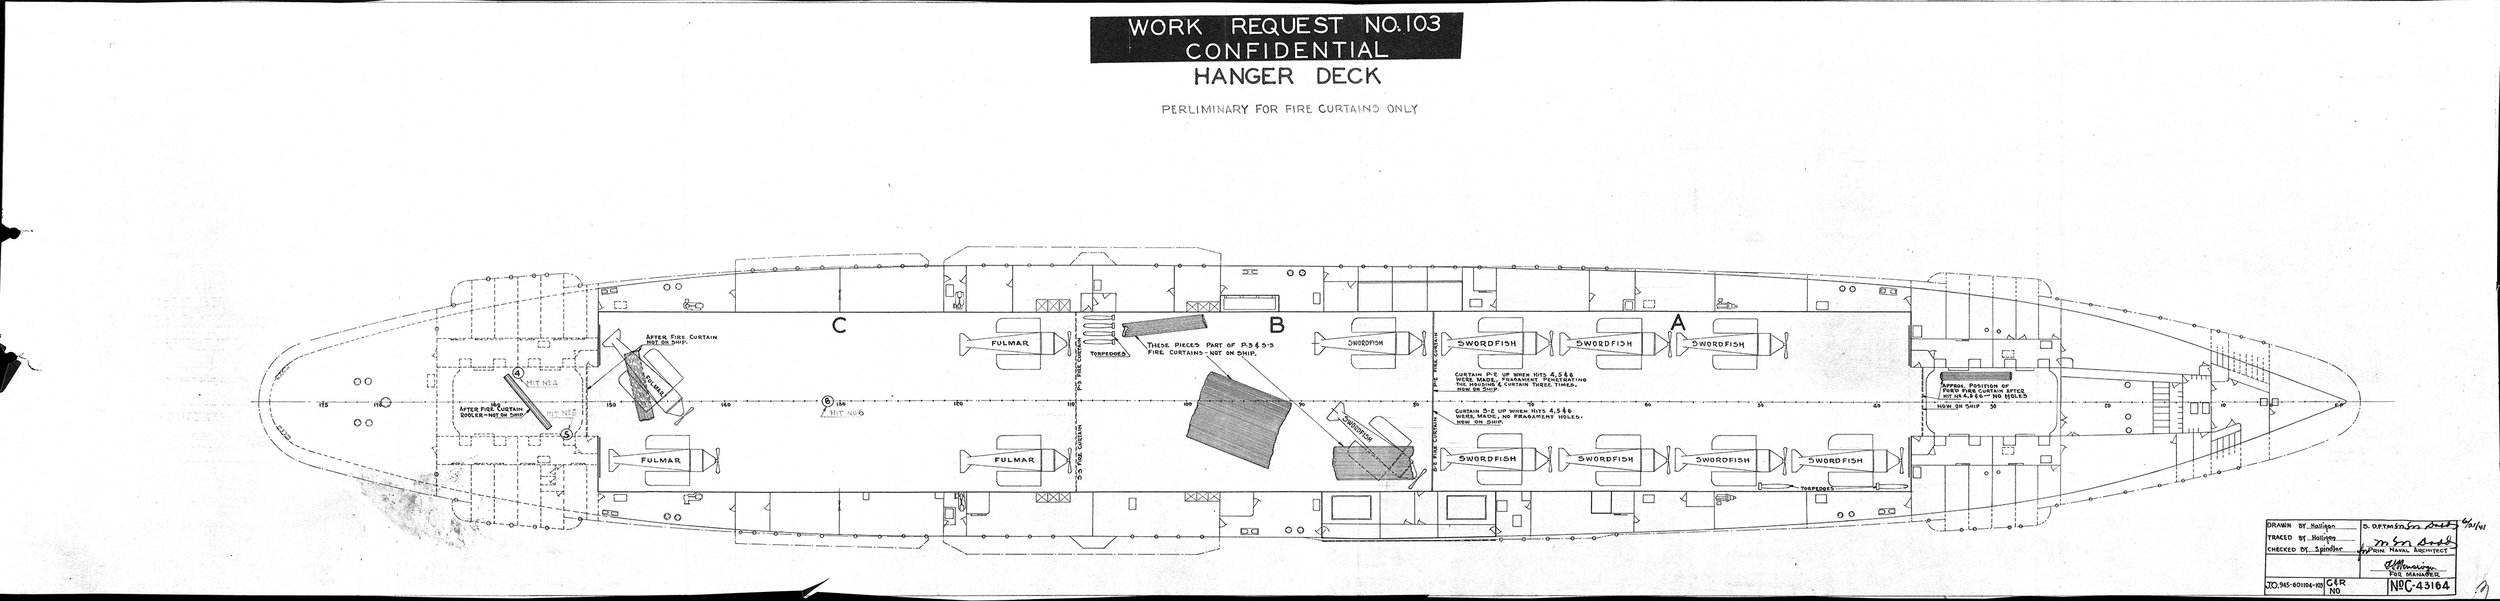 A preliminary hangar deck damage diagram in the US National Archive, showing the position of aircraft and the metal fire curtains. Click on the image for a larger version to display. Picture courtesy 'Researcher at Large'